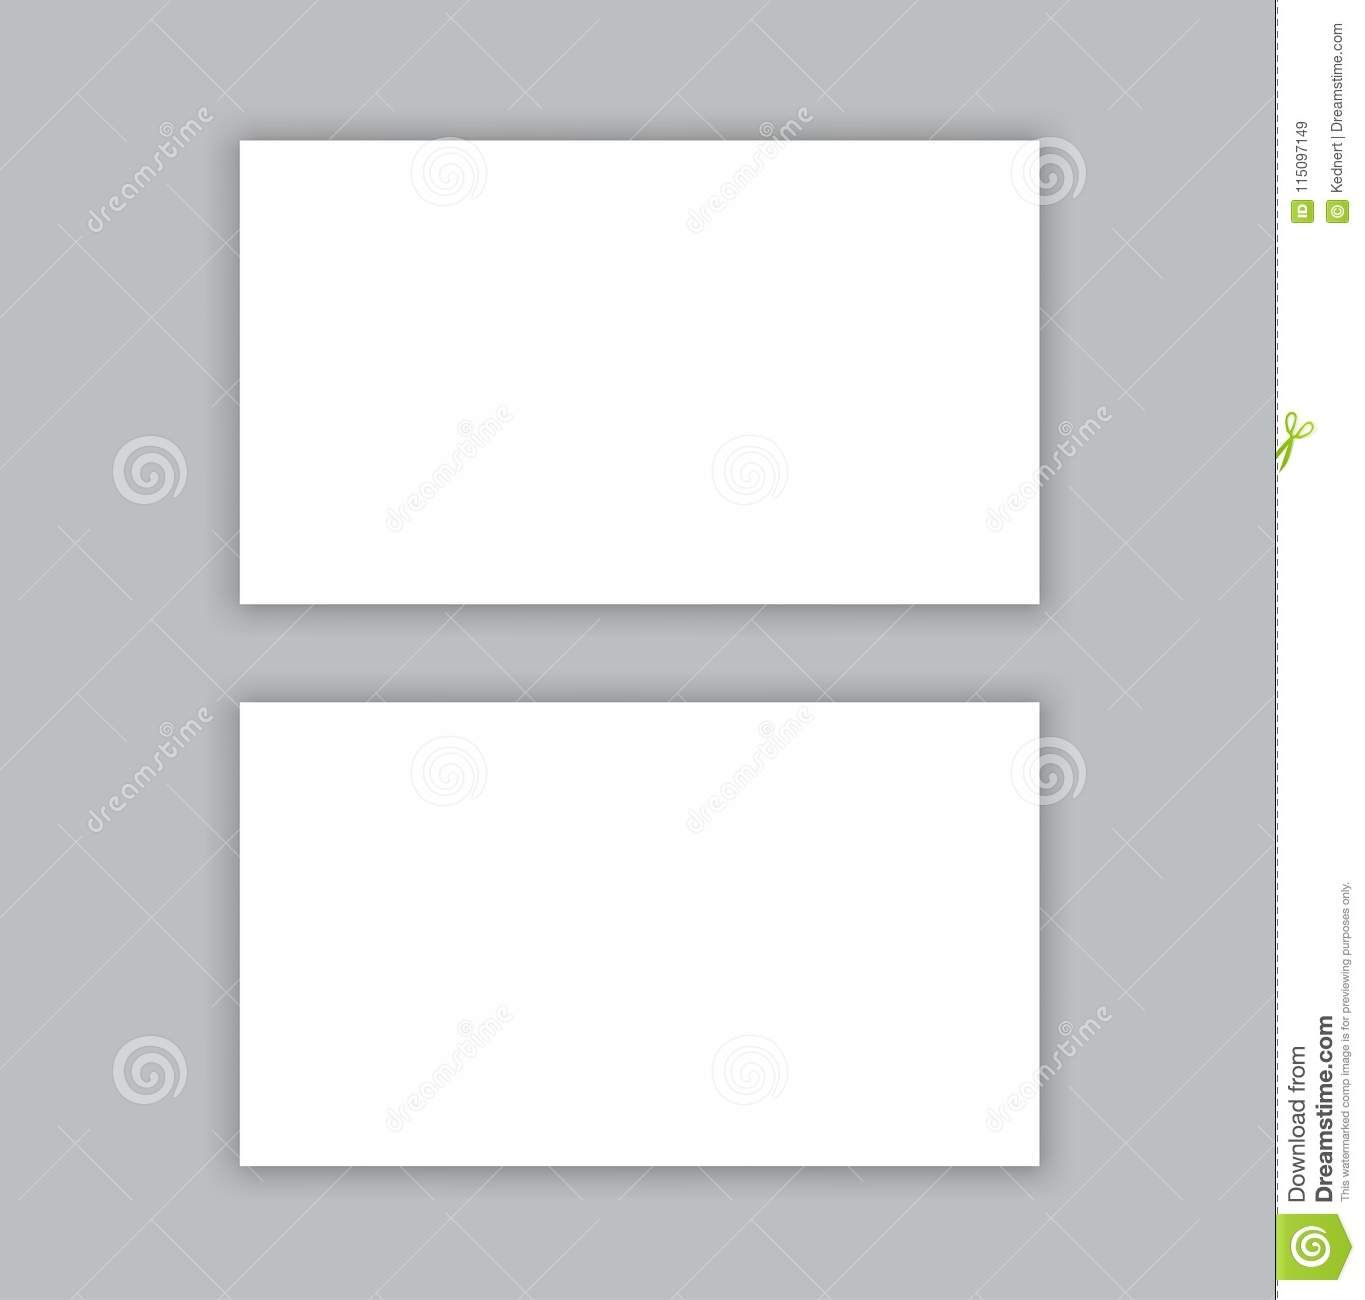 Blank Business Card With Shadow Mockup Cover Template Stock Throughout Plain Business Card Template Blank Business Cards Business Card Template Cover Template